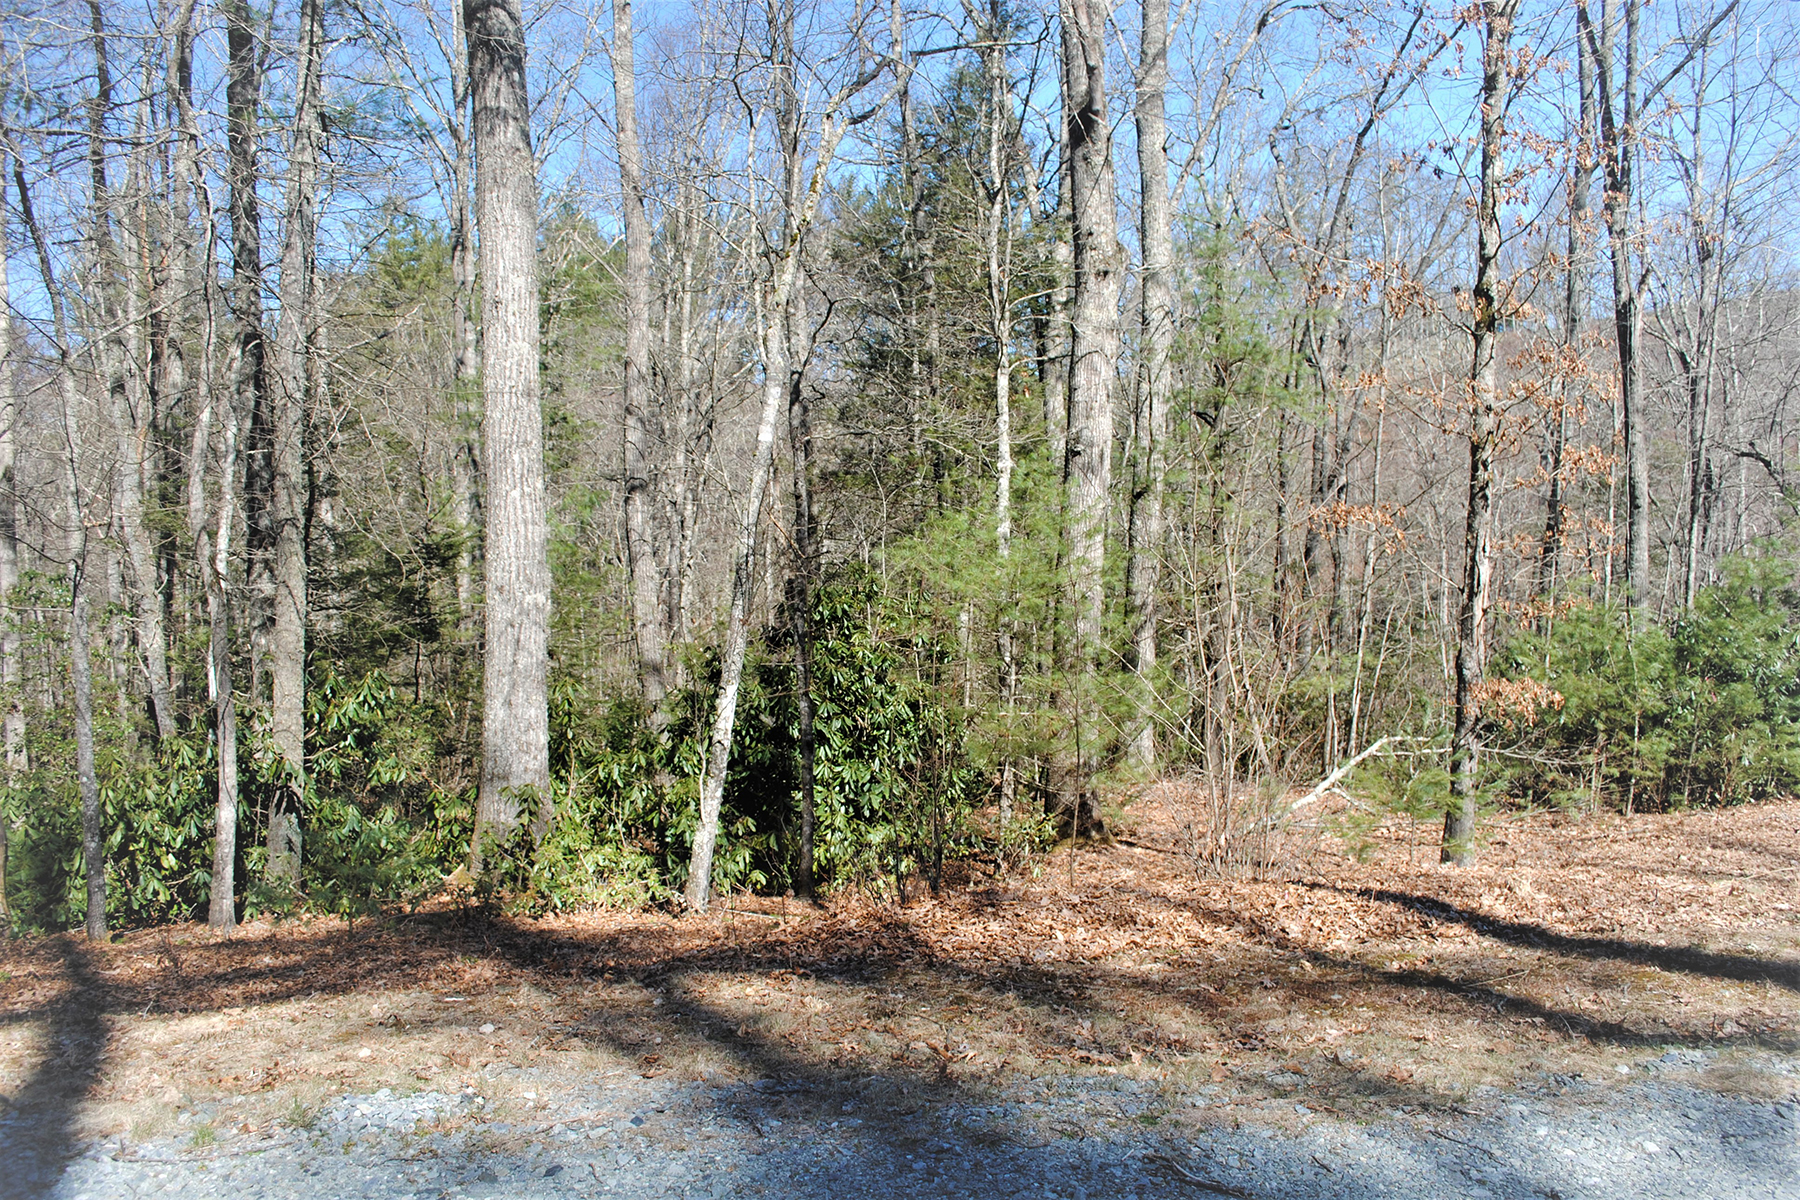 Land for Sale at STONECREST - FLEETWOOD Lot 32 Maple Leaf Rd Fleetwood, North Carolina 28626 United States